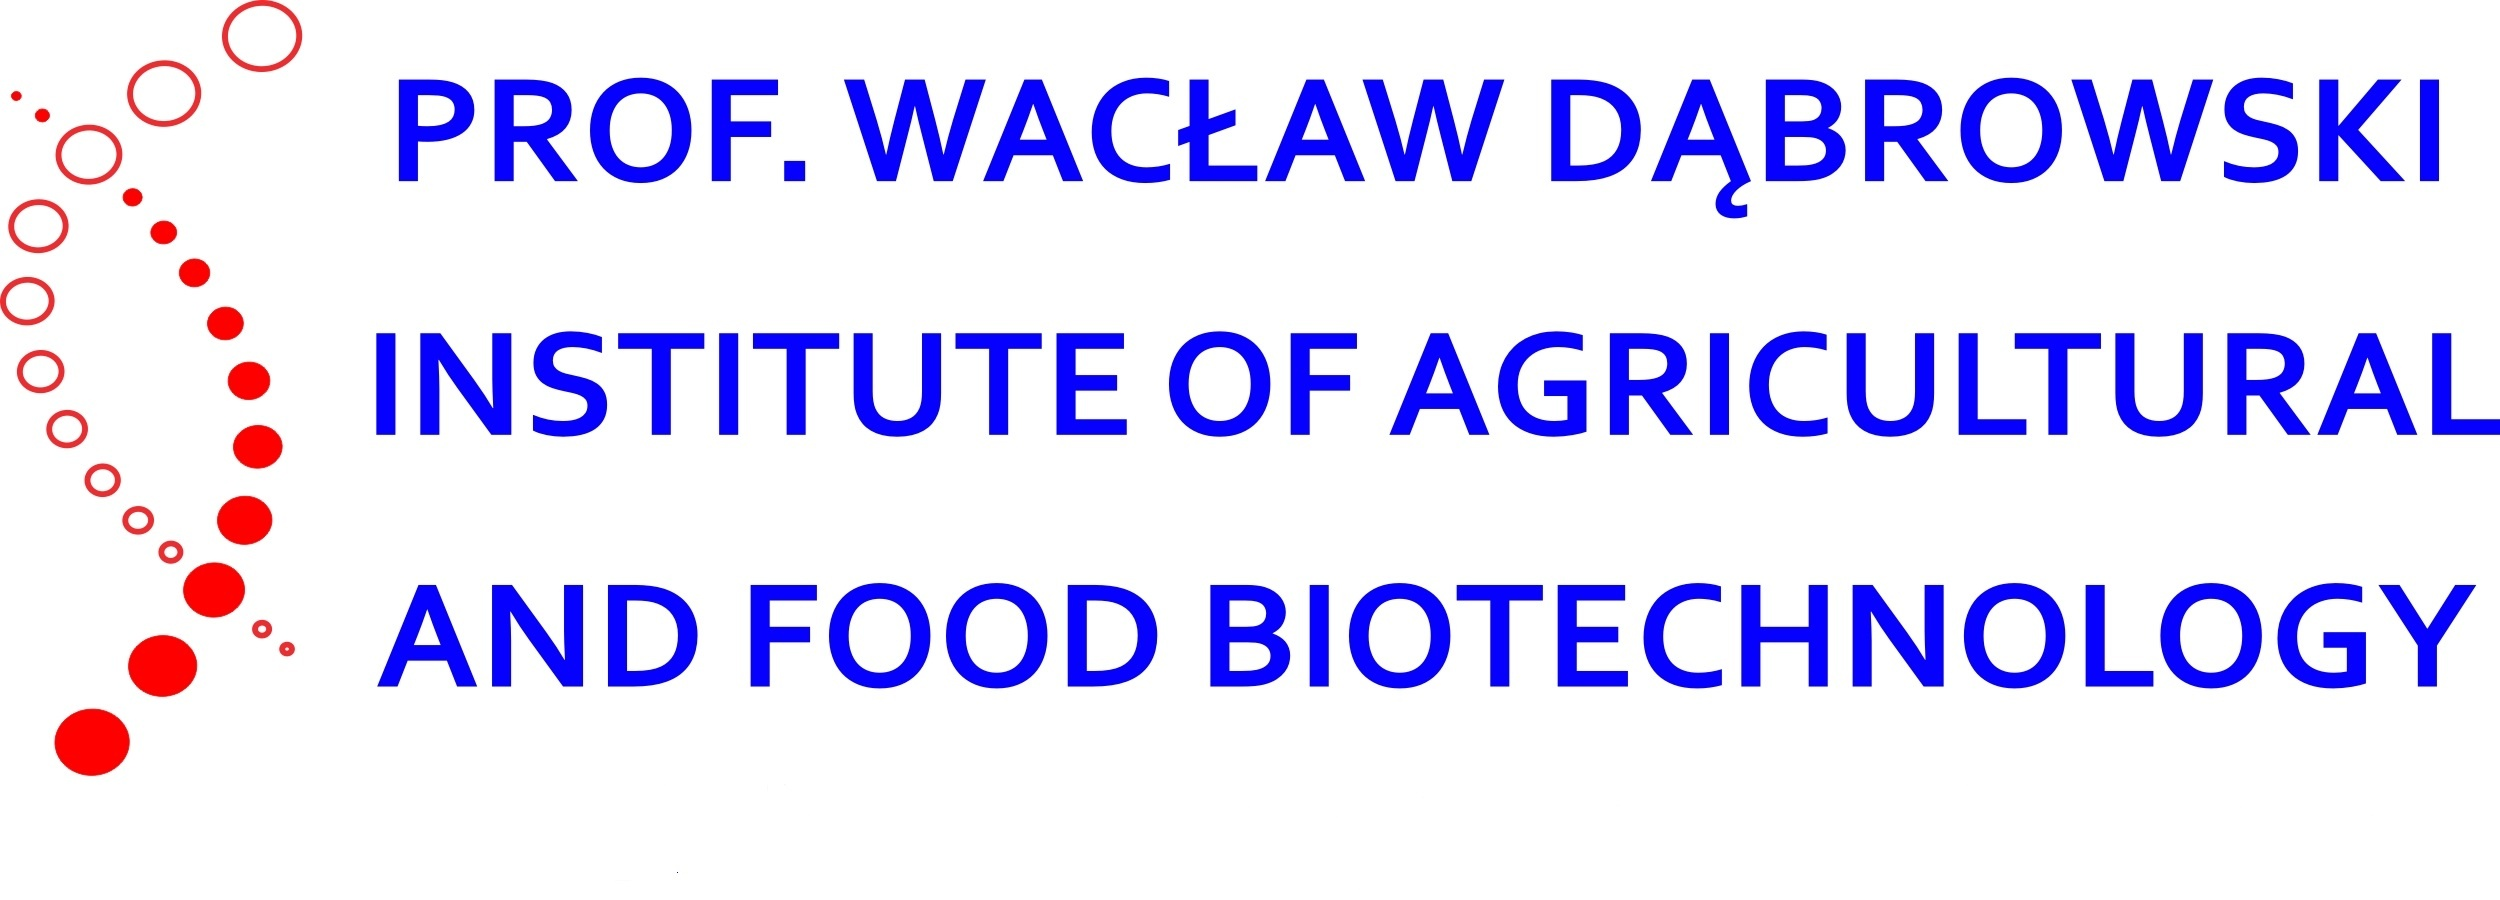 Institute of Agricultural and Food Biotechnology